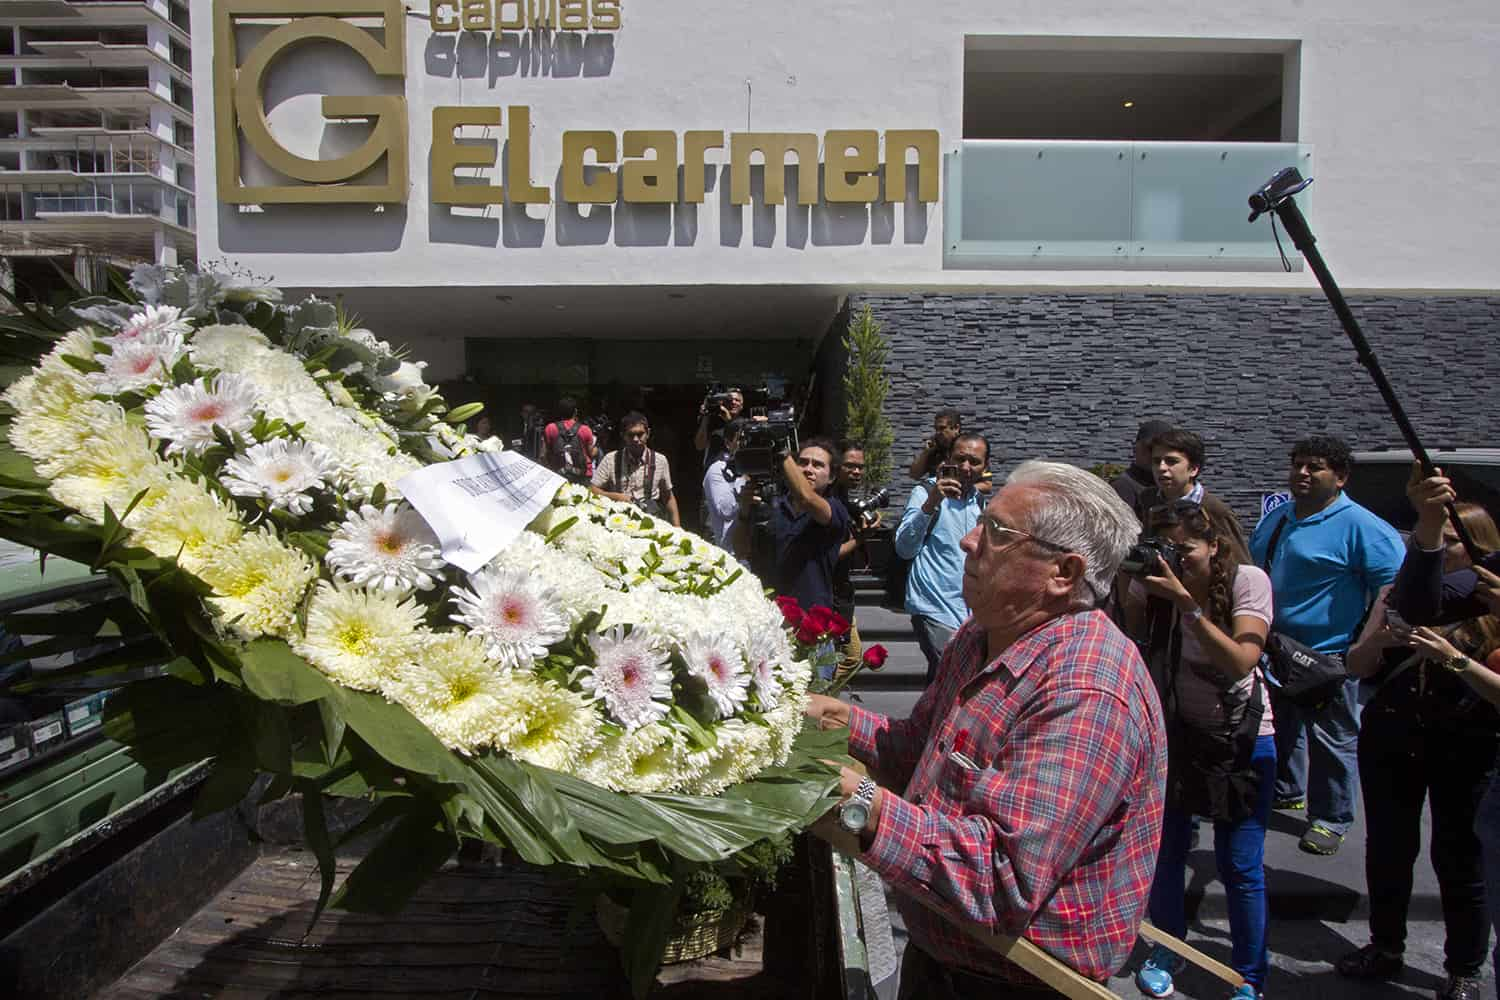 """A man delivers a wreath during the funeral of professional wrestler Pedro Aguayo Ramirez aka """"Perro Aguayo Jr"""" in Guadalajara city on March 22, 2015."""